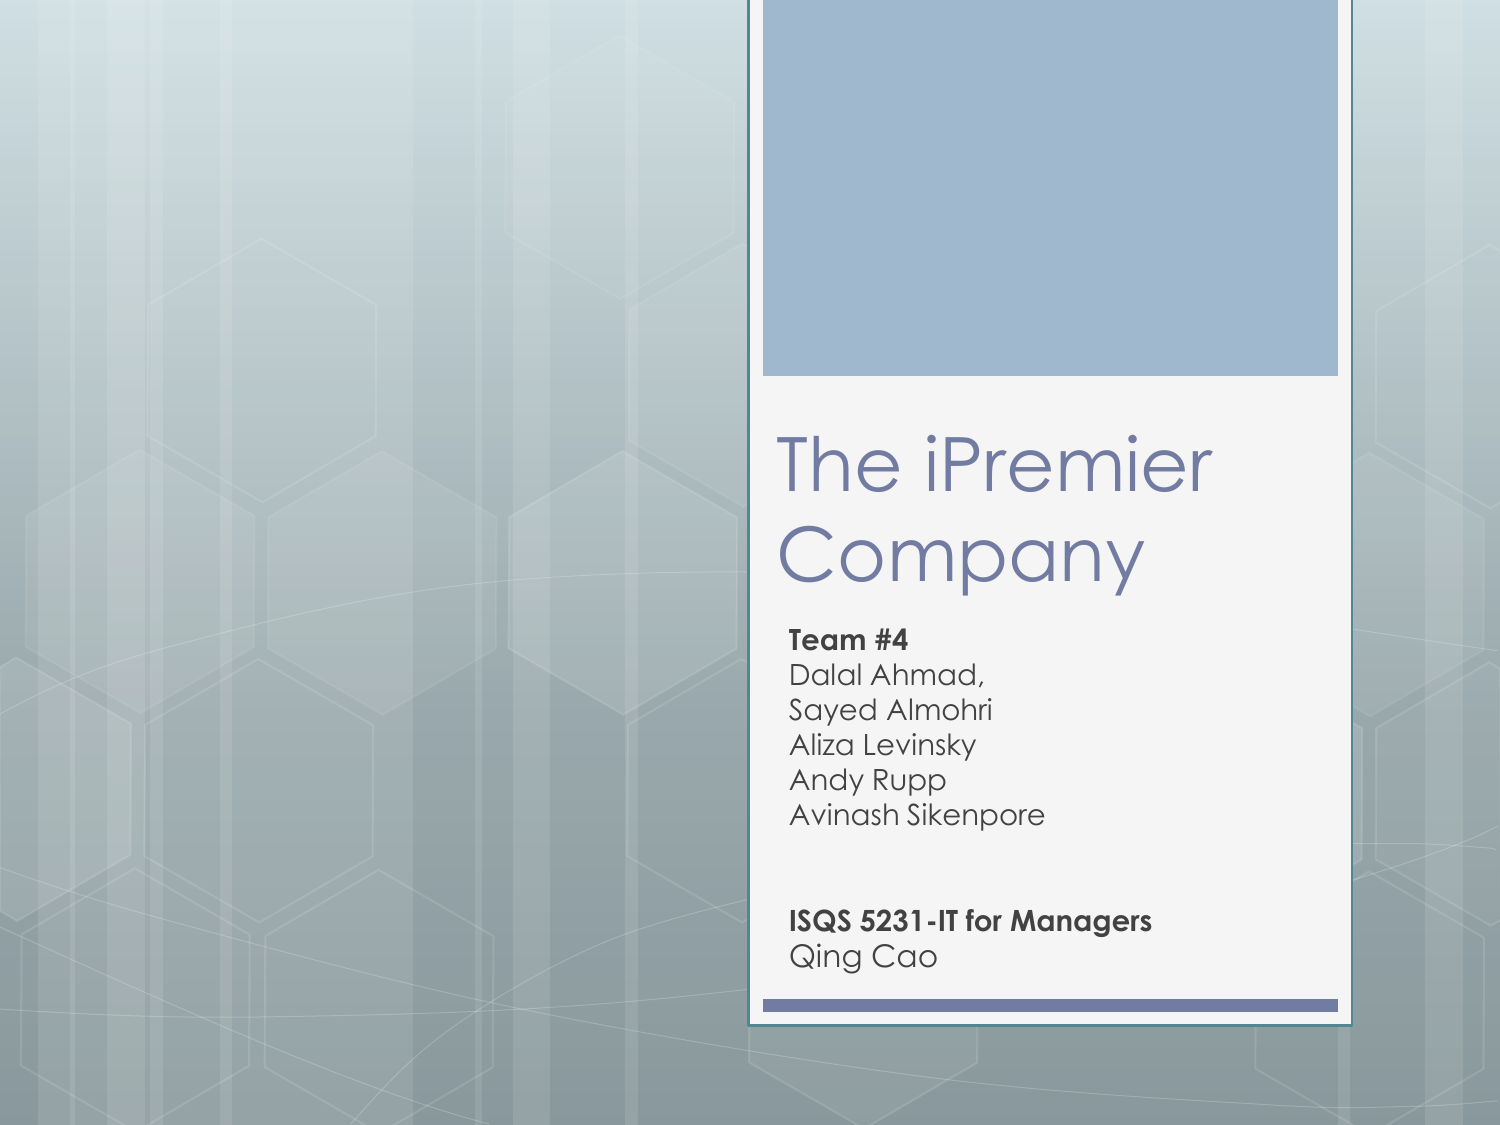 Ipremier case study answers